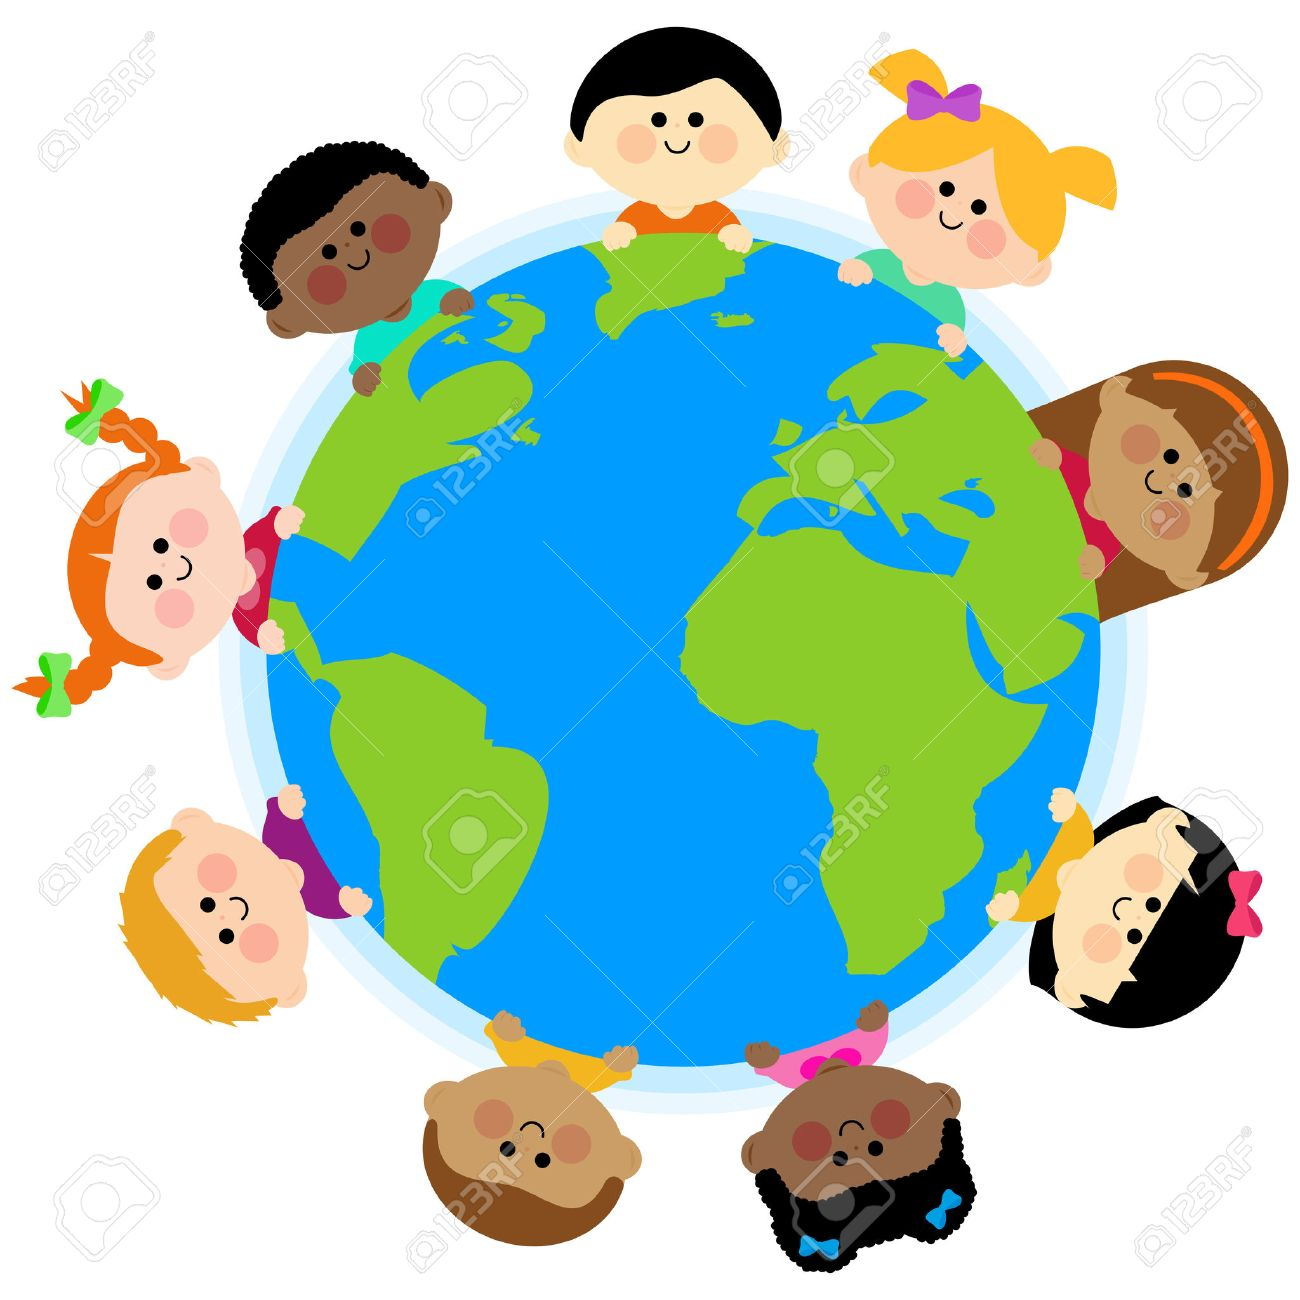 Multi ethnic group of kids around the earth - 46490863